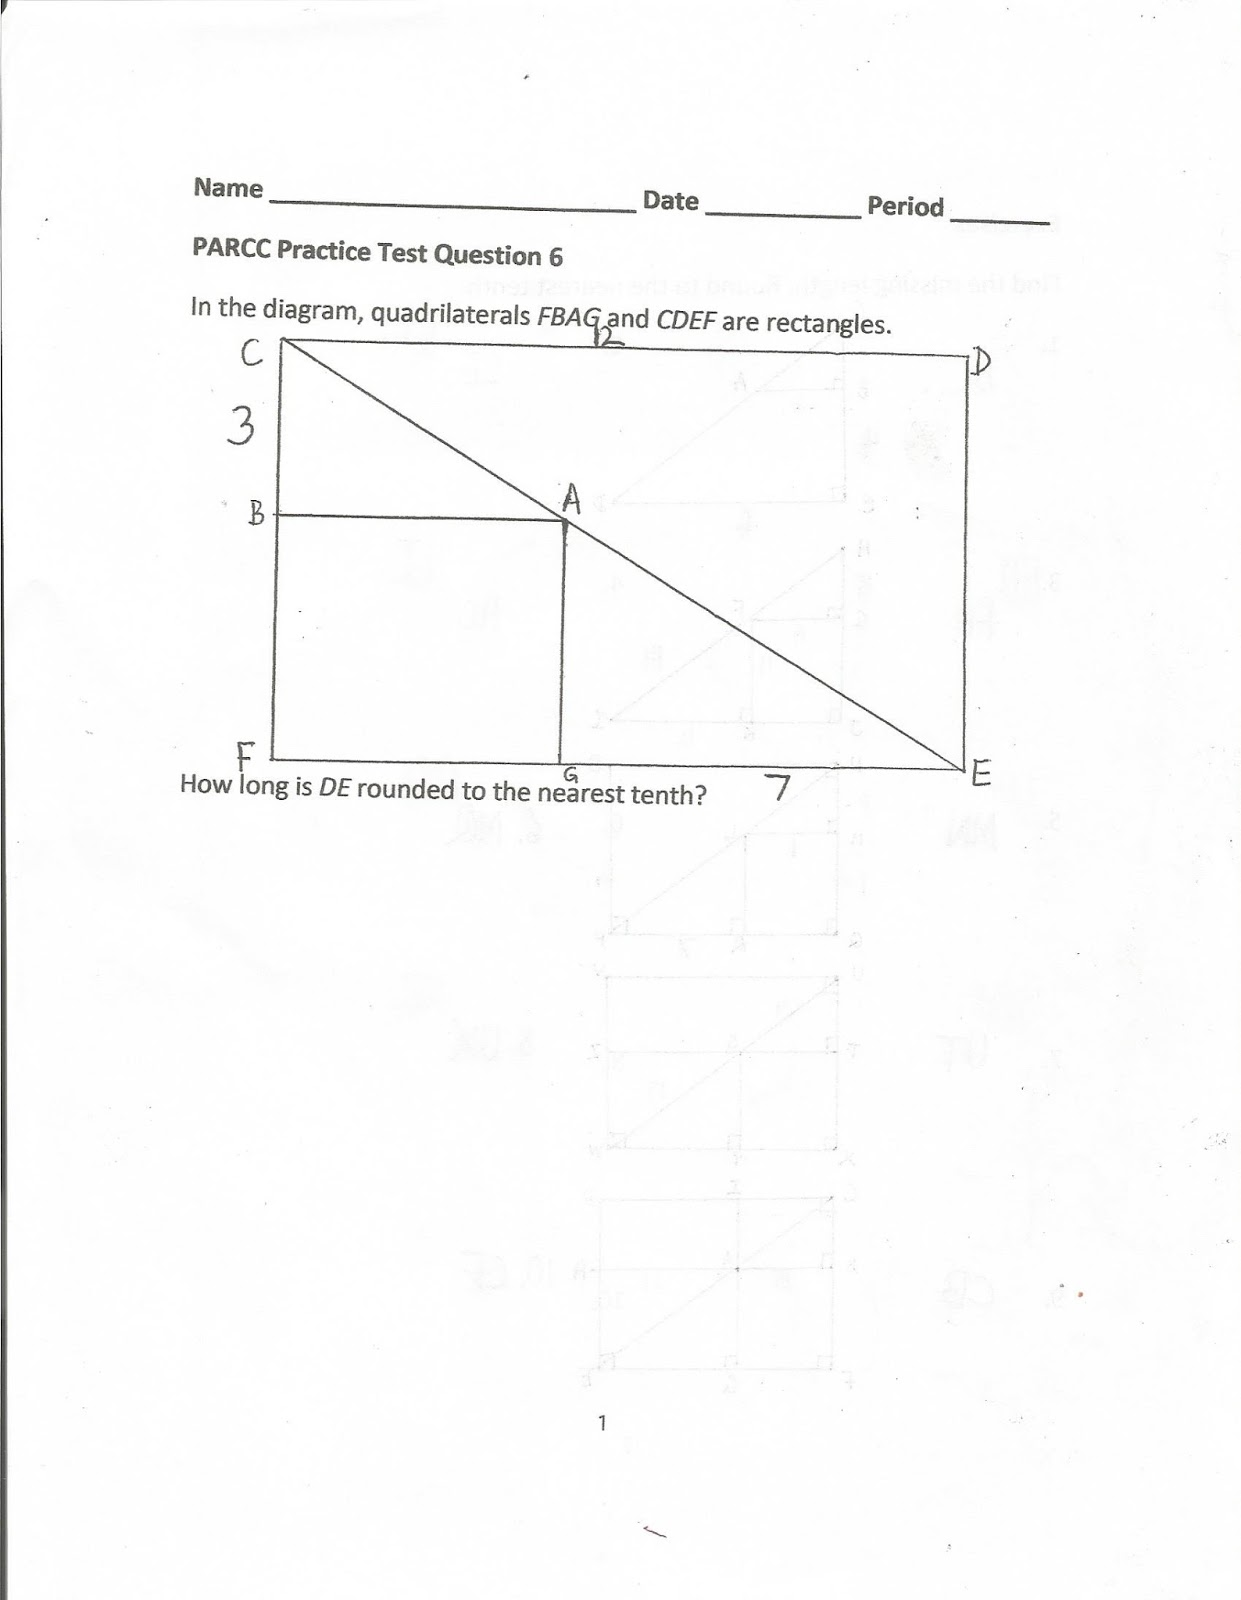 Geometry Common Core Style Parcc Practice Test Question 6 Day 149